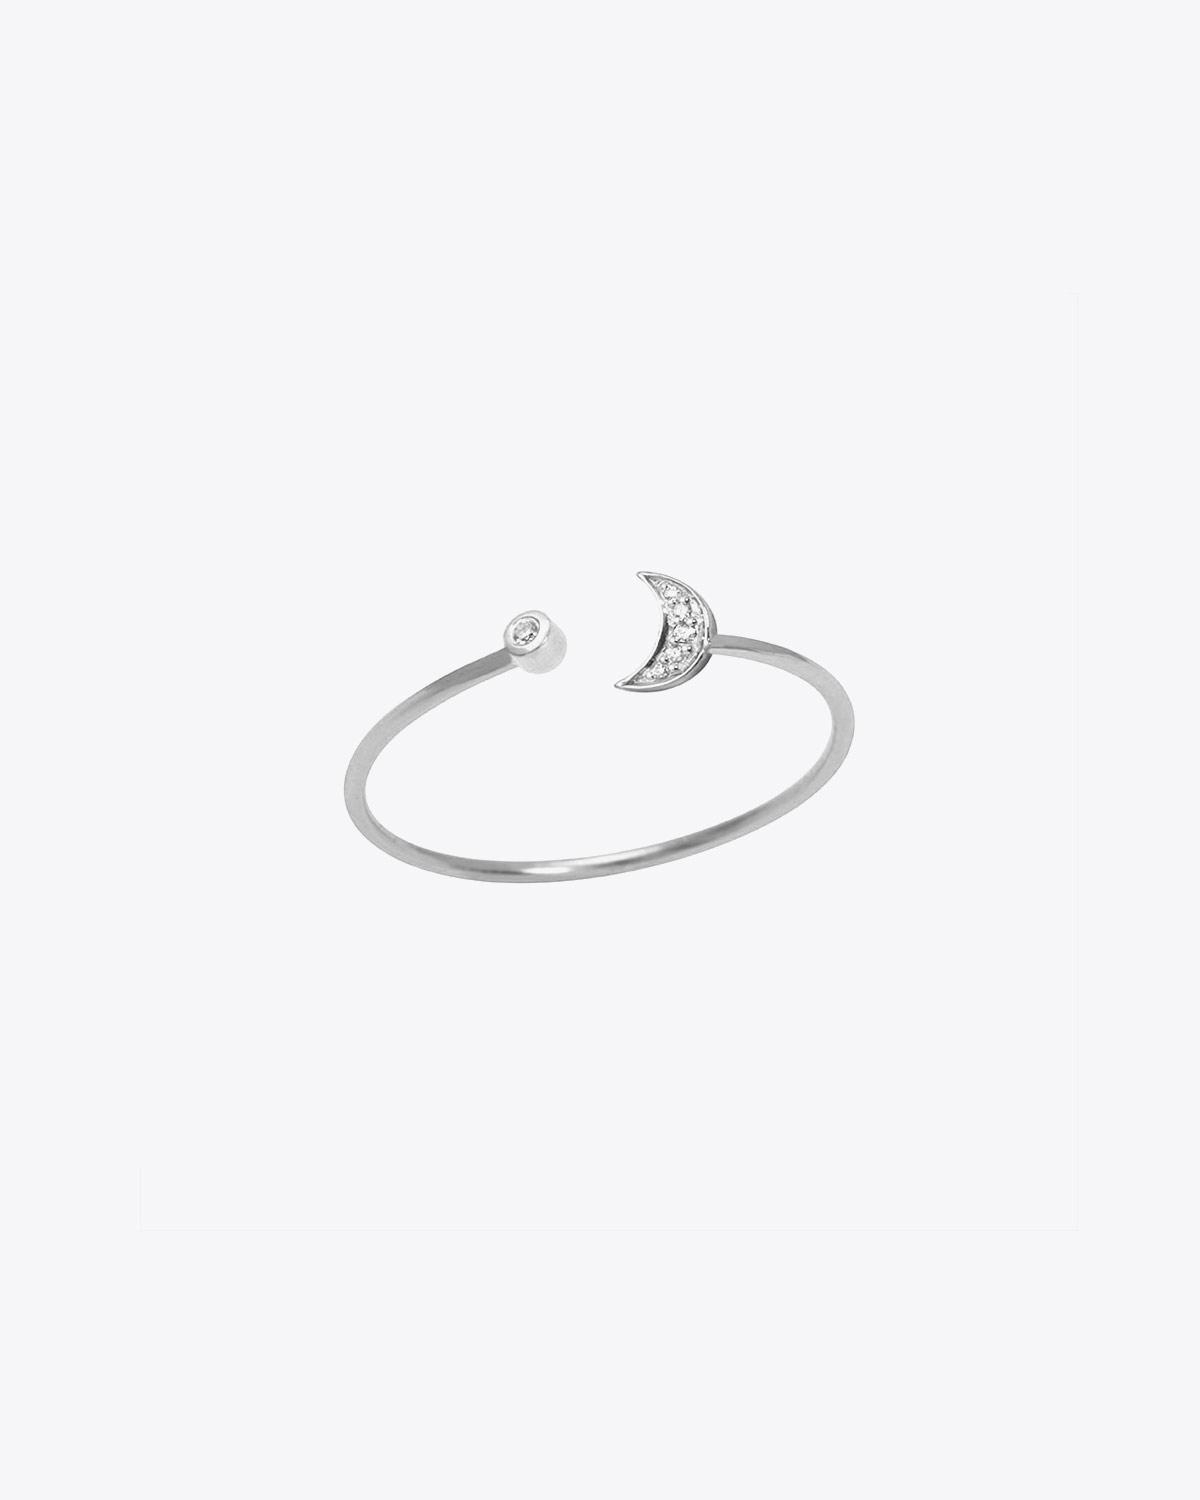 Feidt Bague Lune ouverte In the Moon for love - Or blanc 18k, Diamants